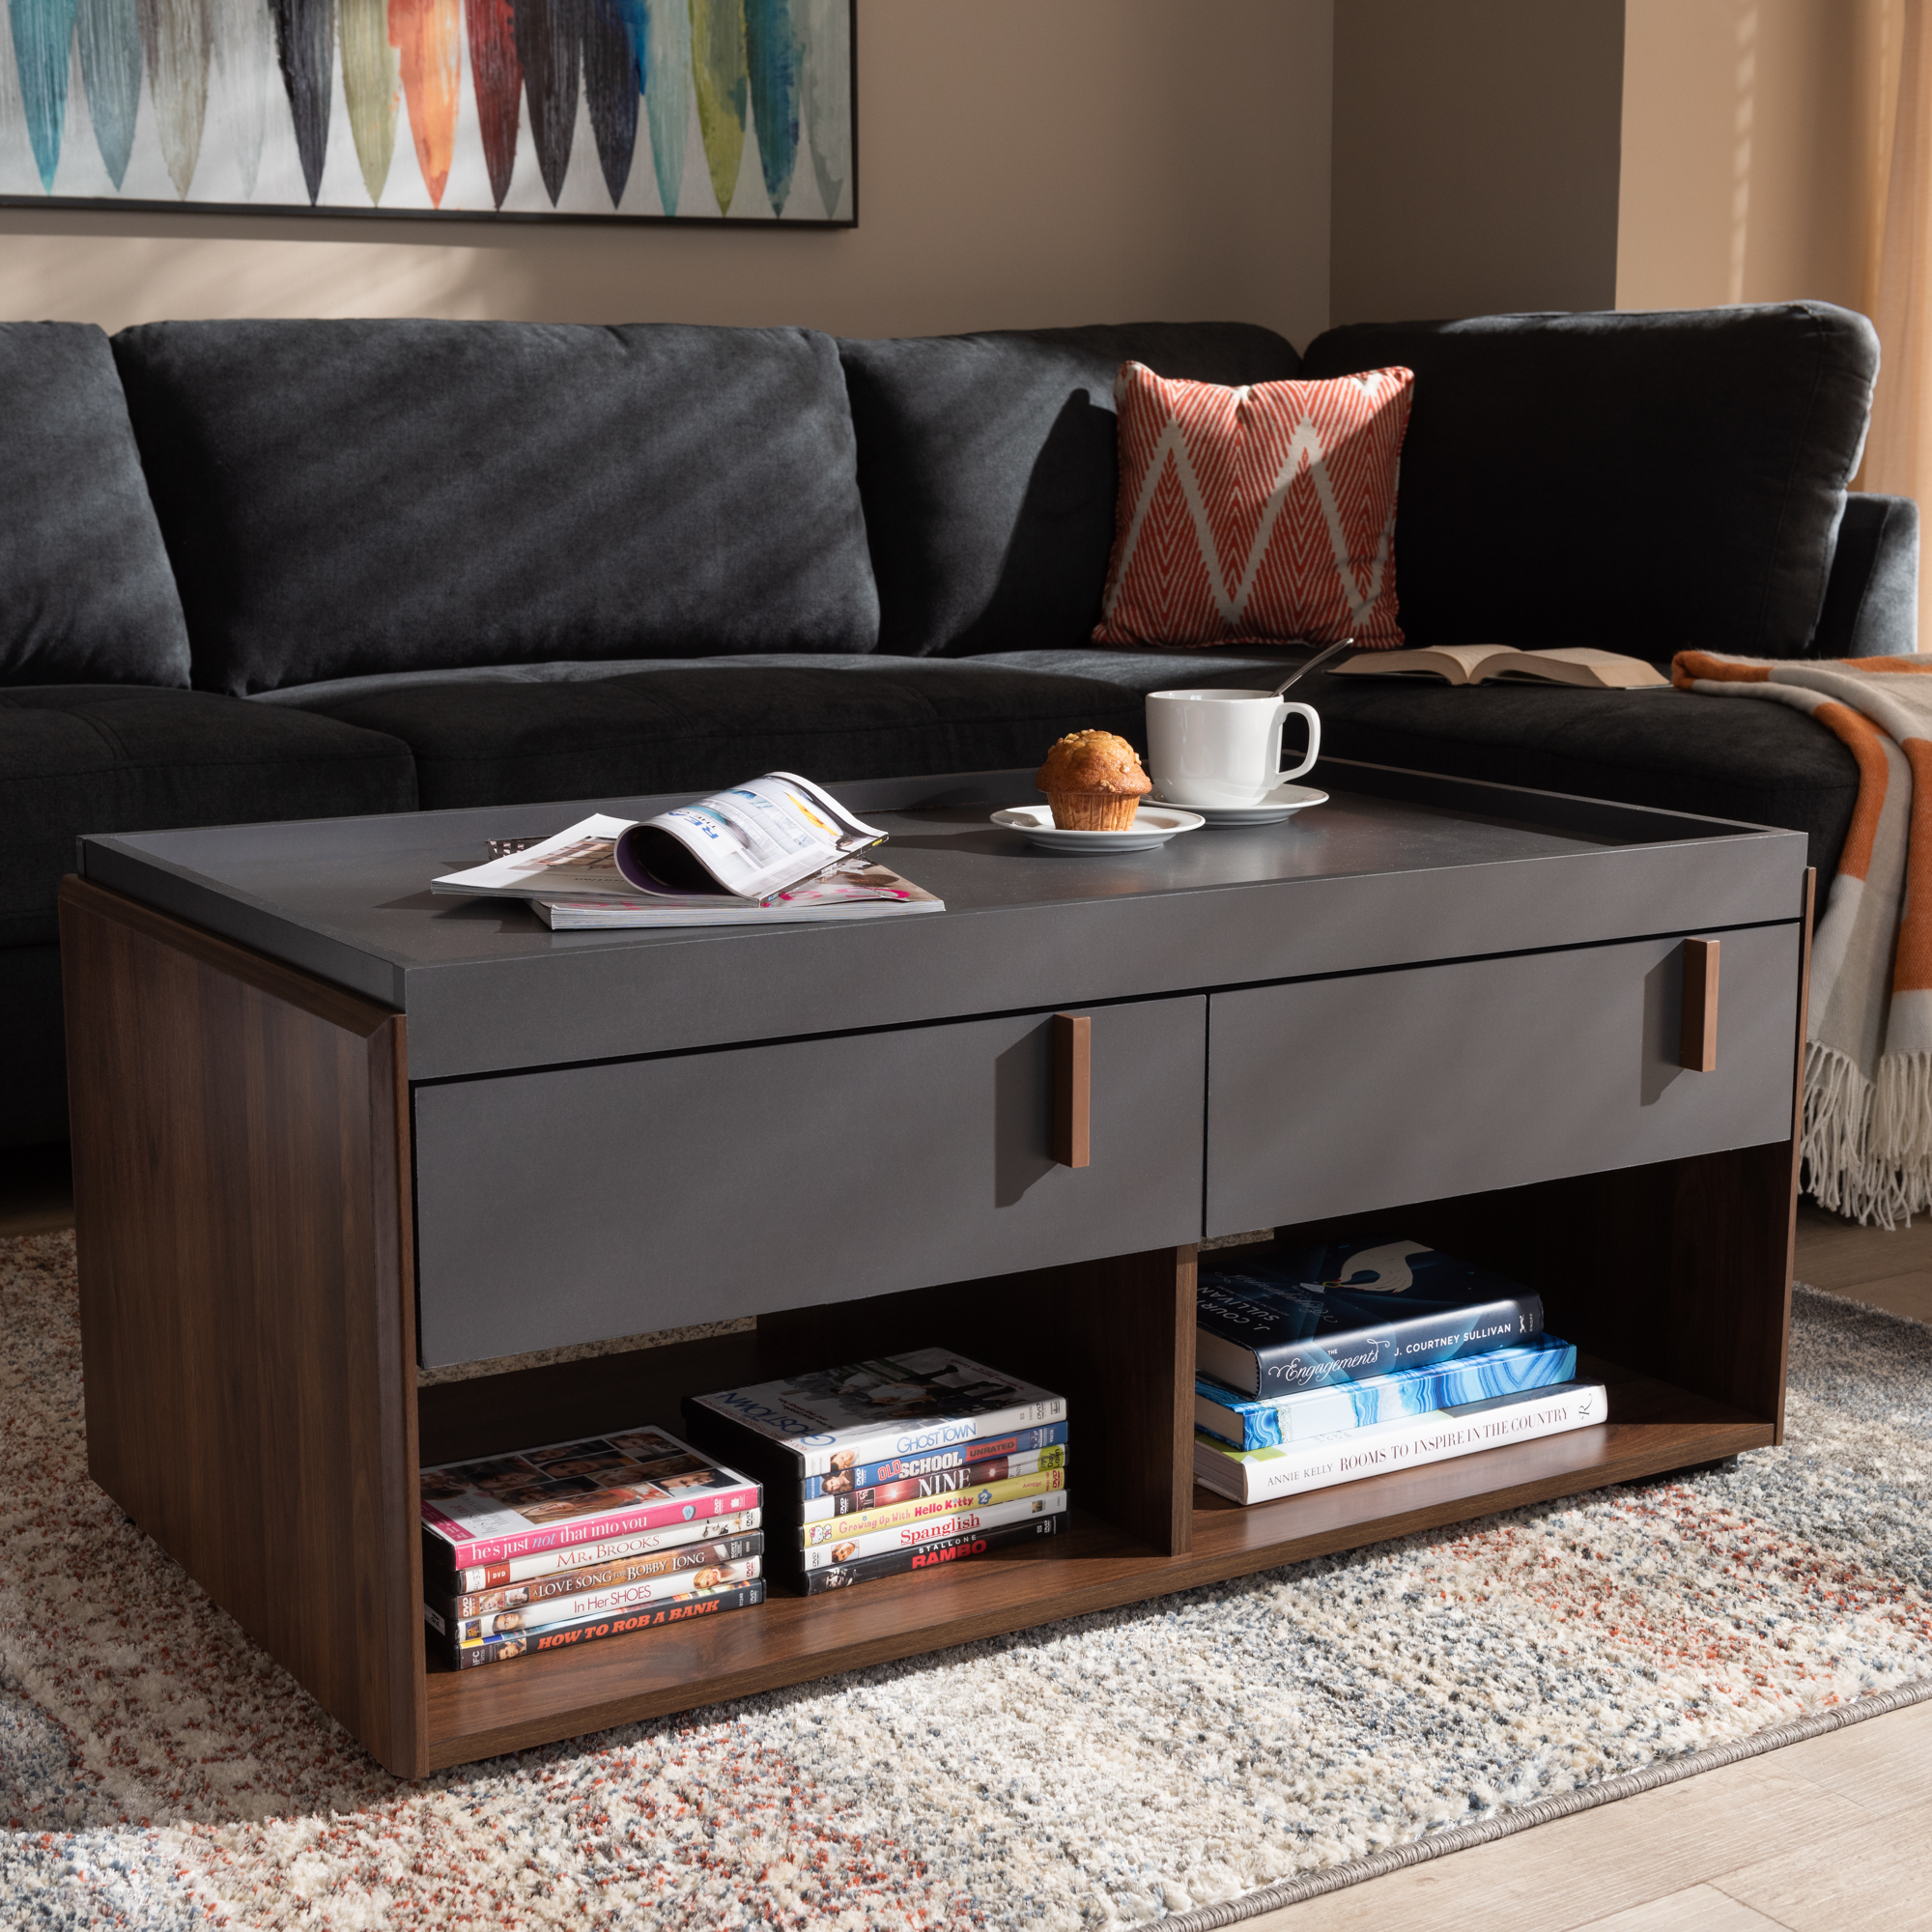 baxton studio rikke modern and contemporary two tone gray and walnut finished wood 2 drawer coffee table walmart com